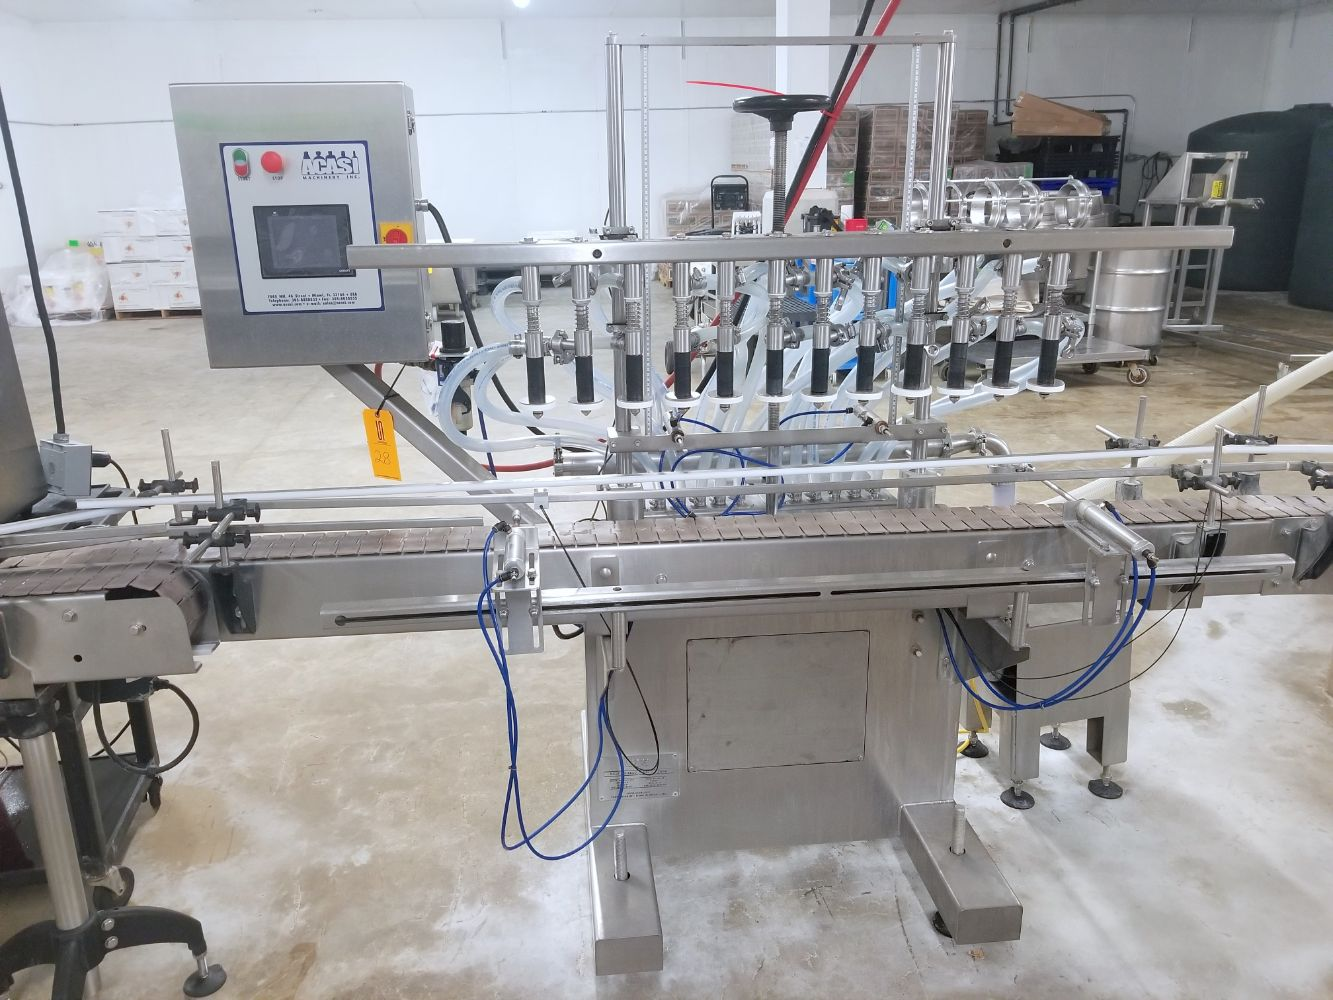 Late Model Beverage Bottling and Processing Equipment from MALK Organics